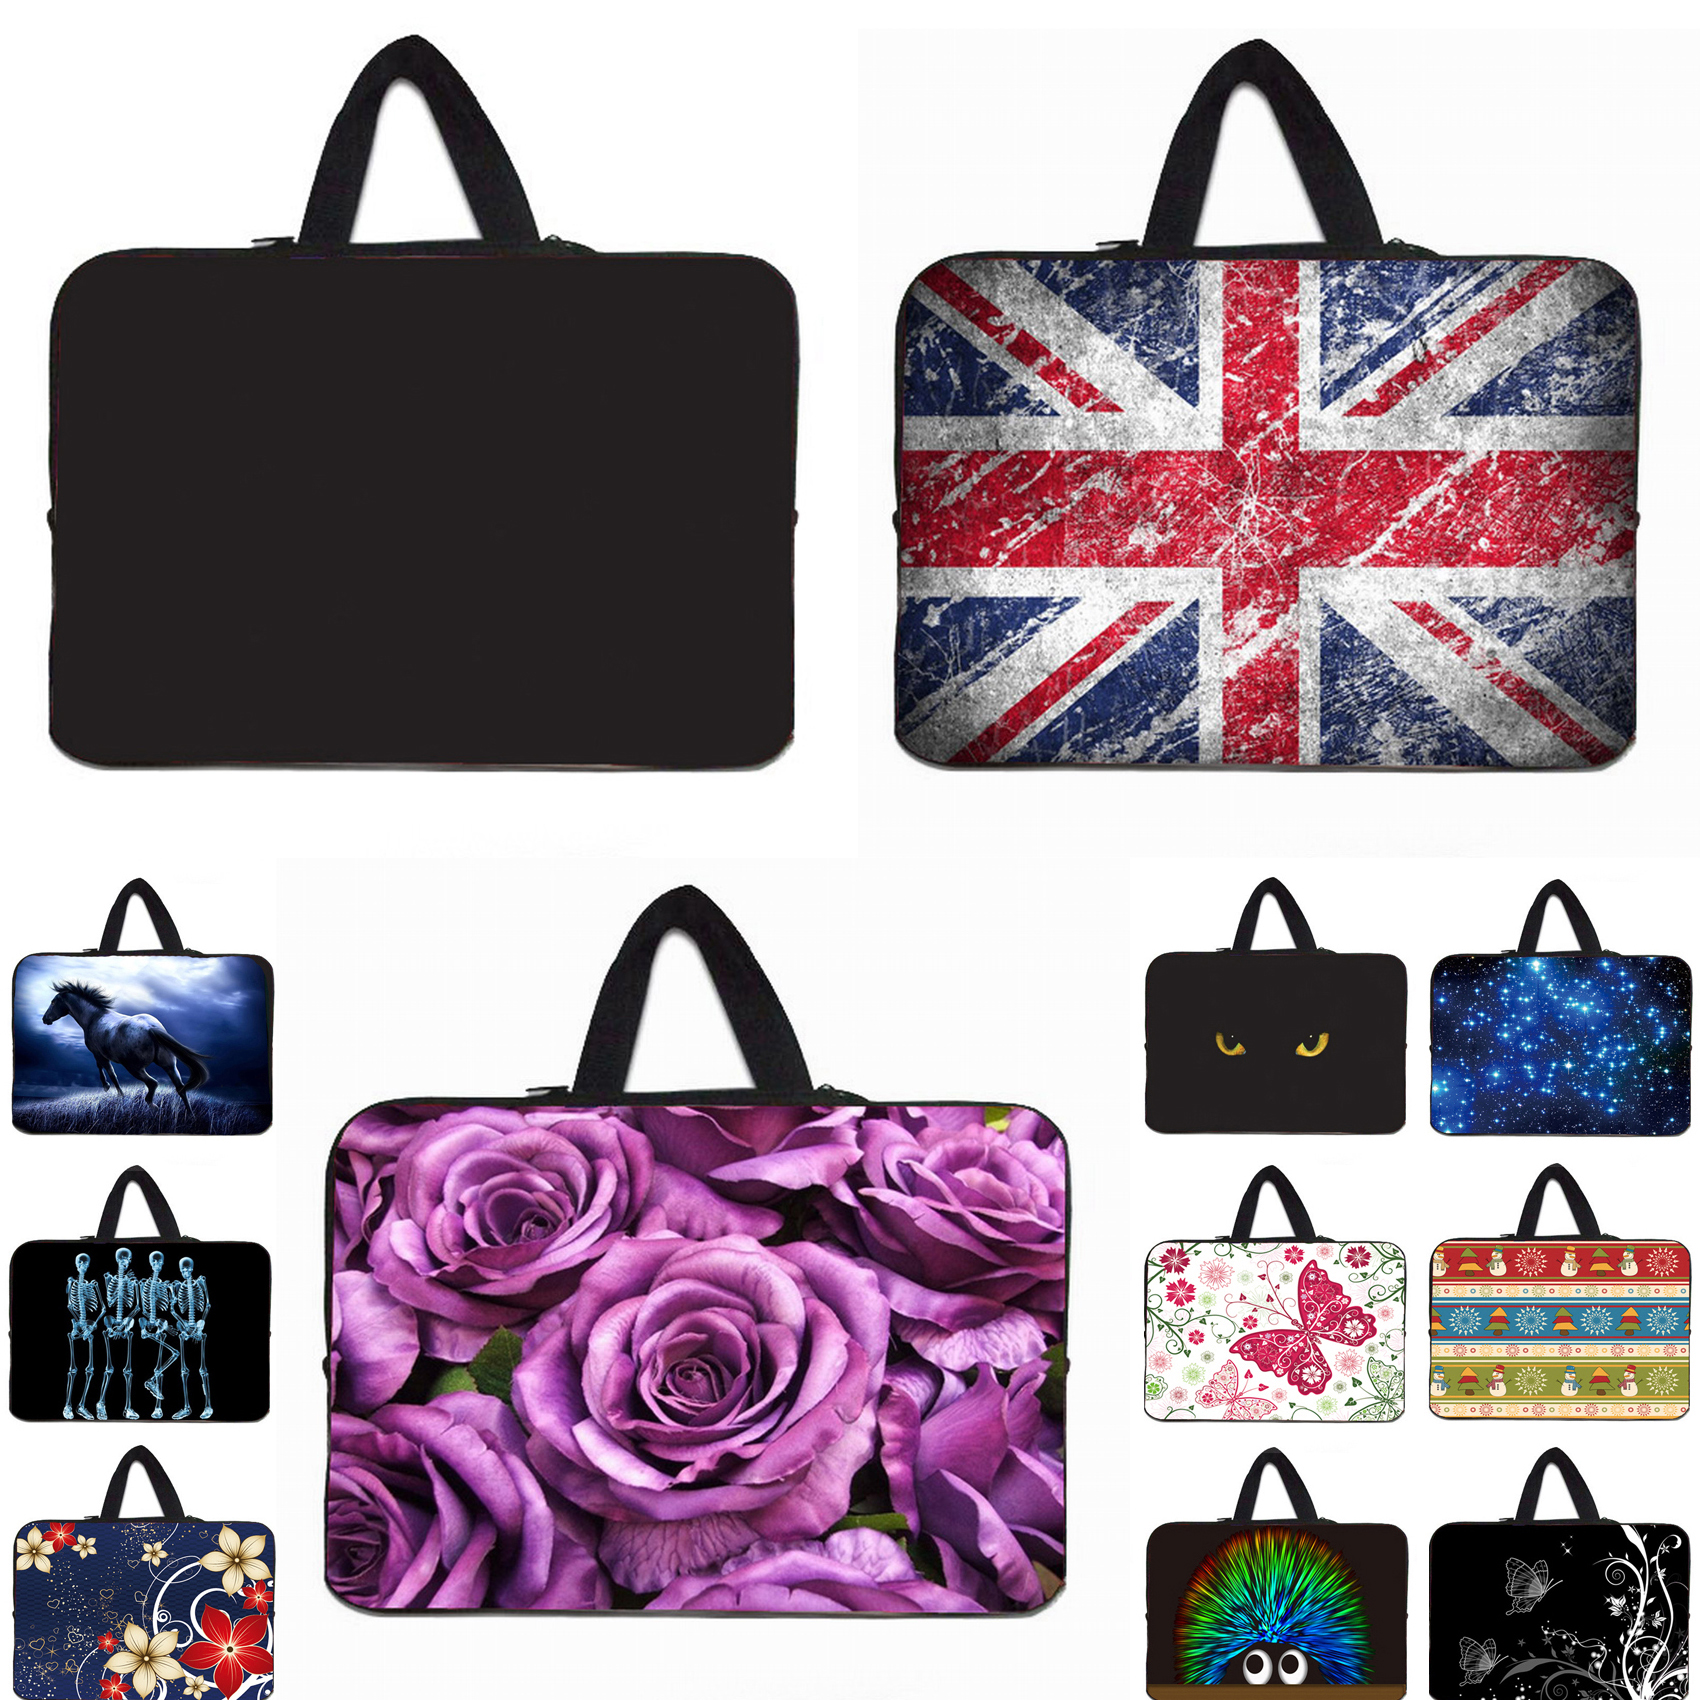 Laptop Bag17 inch 15 14 13 11.6 10 7 Notebook Handle Bags Cover For Dell XPS 10 12 13 14 Nexus 7 Macbook Air 11 13 Computer Hot